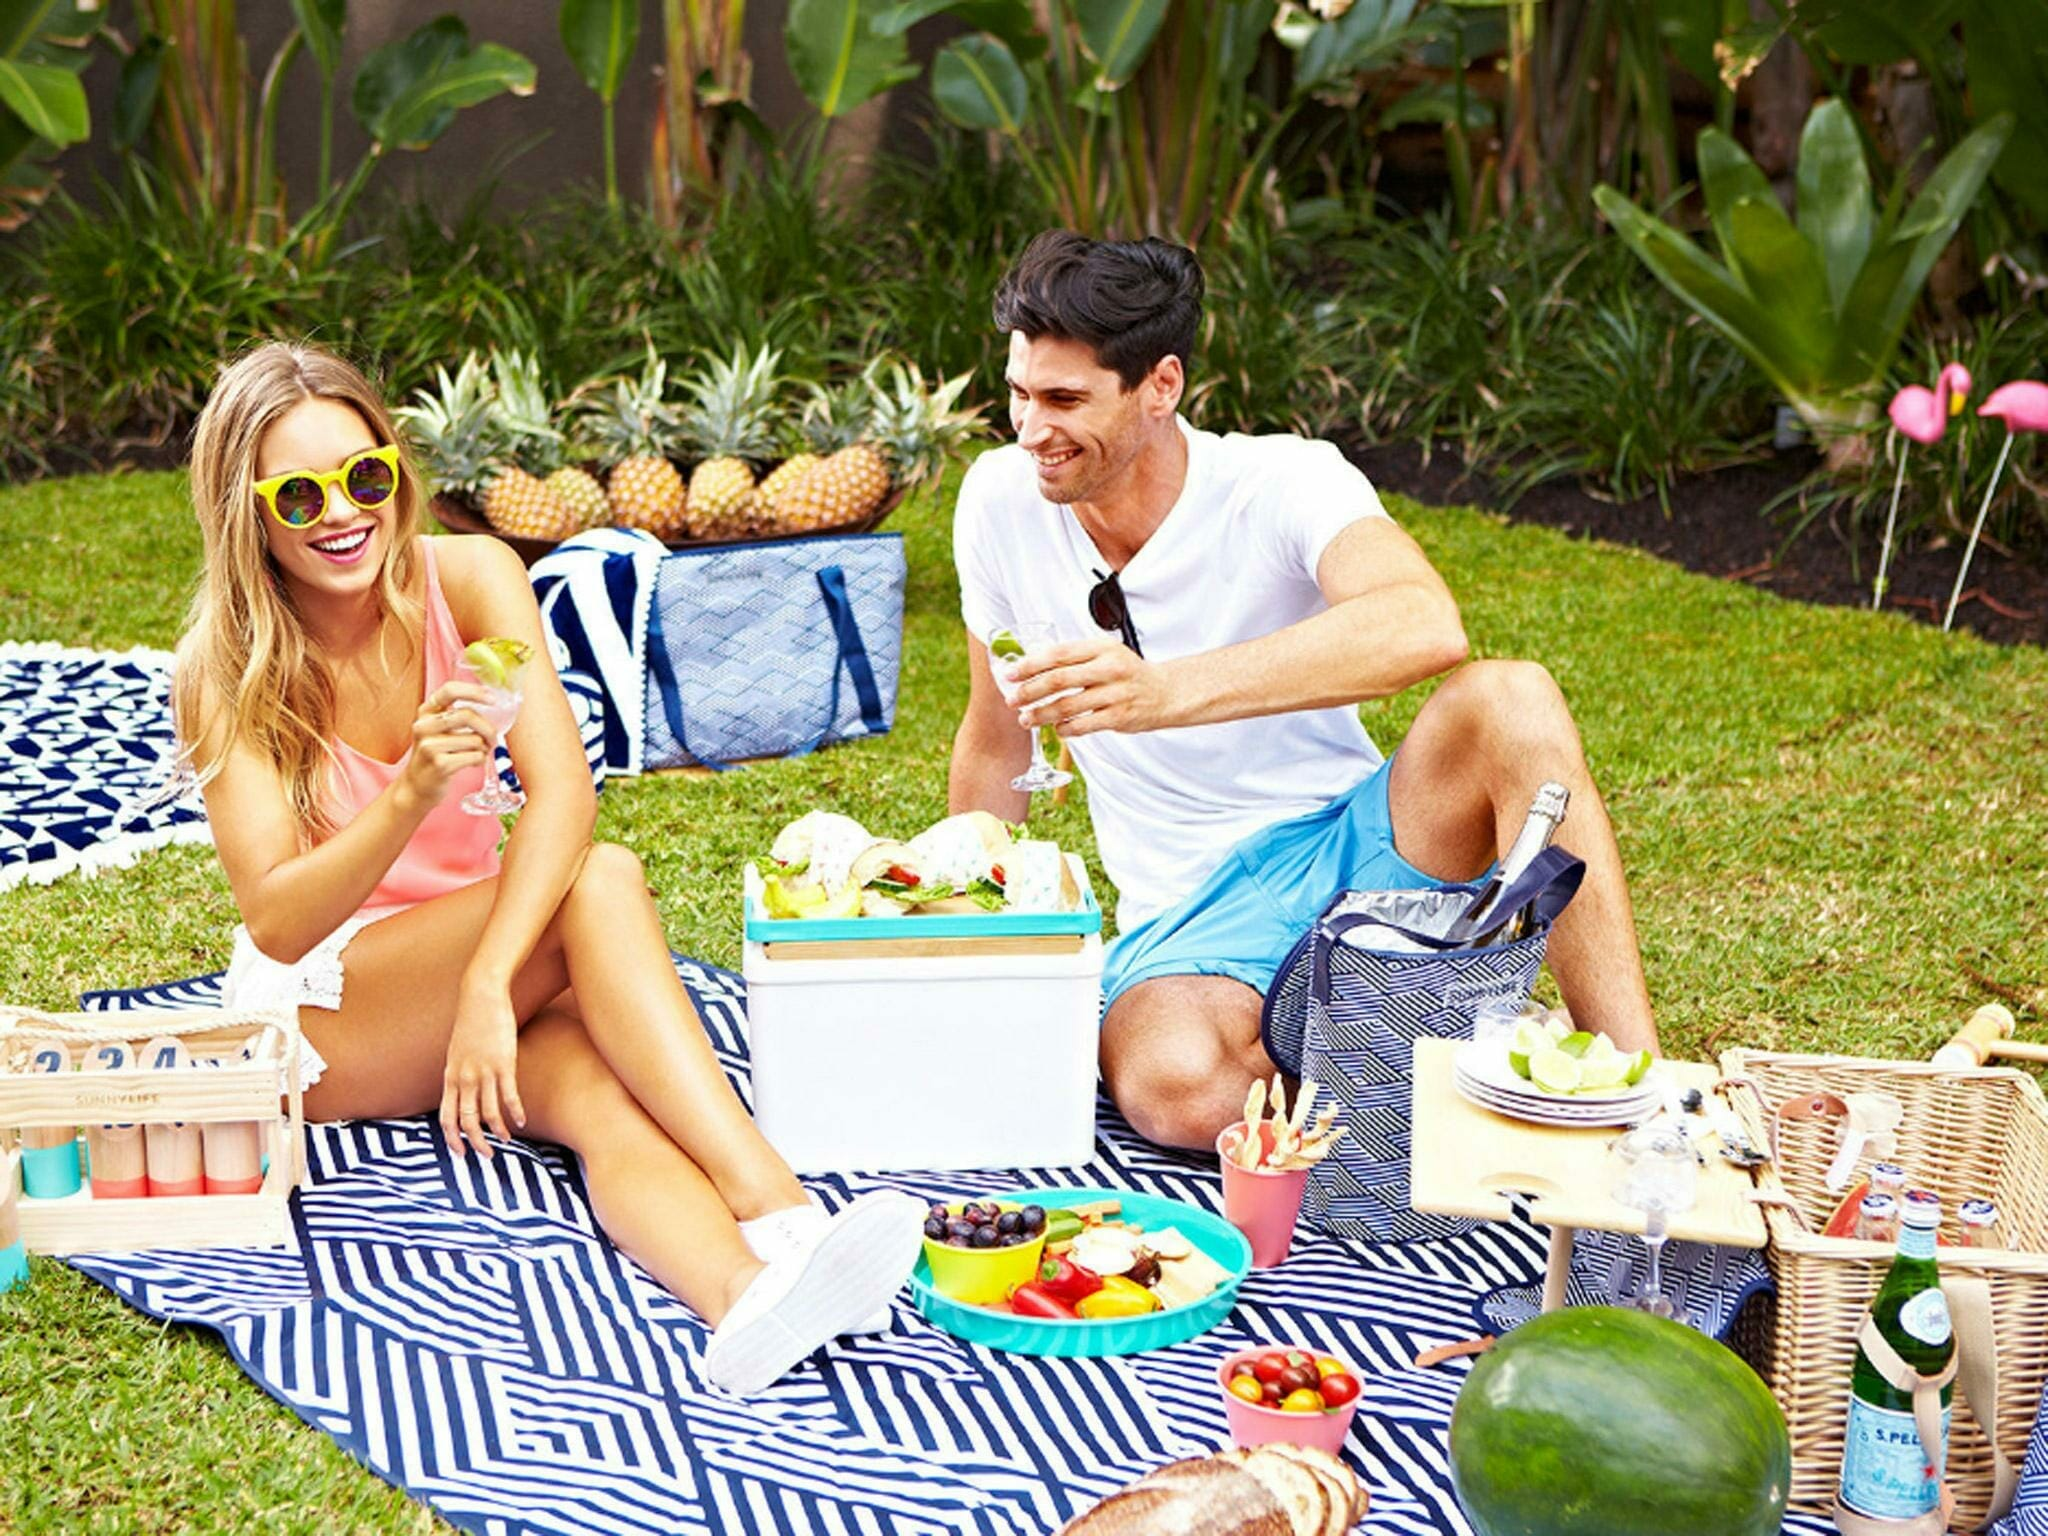 cheap-date-ideas-picnic